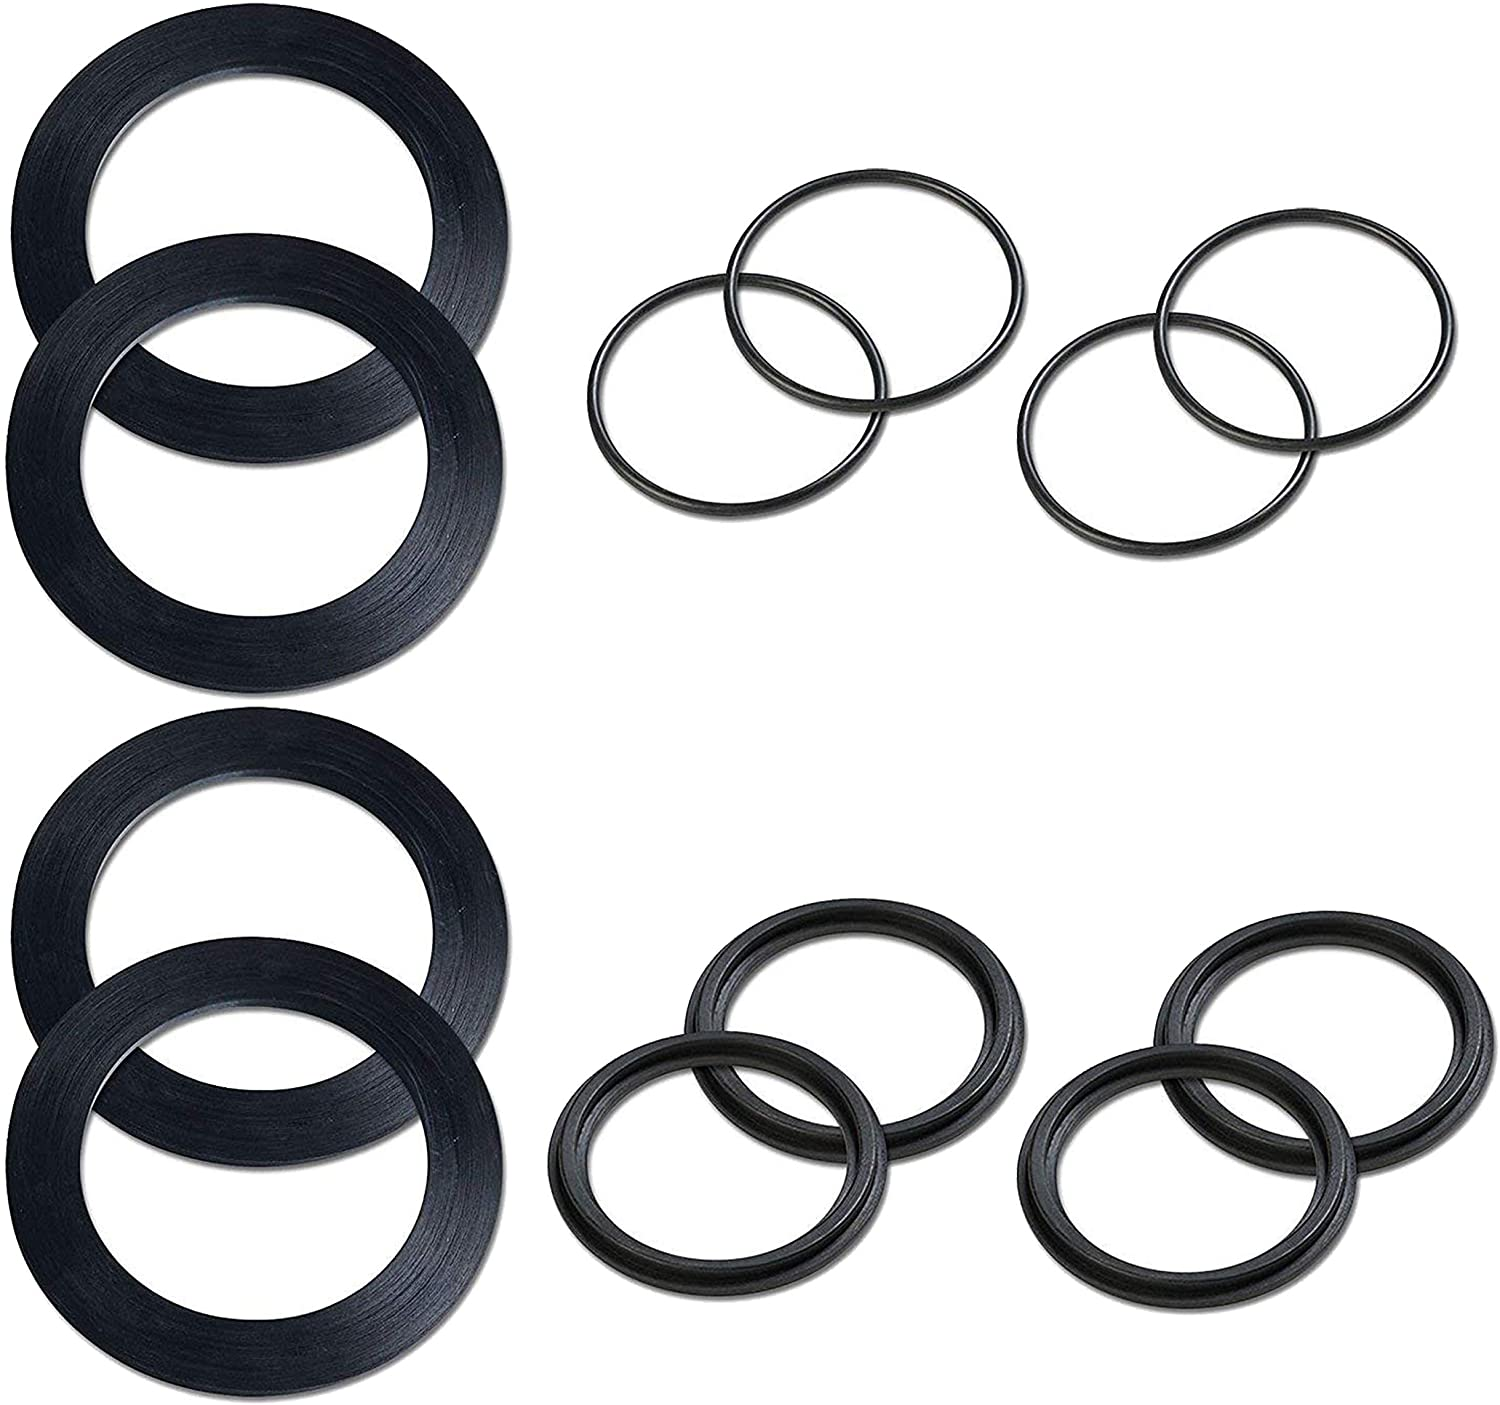 Intex Replacement Rubber Washer & Ring Pack for Large Pool Strainers 2 Pack